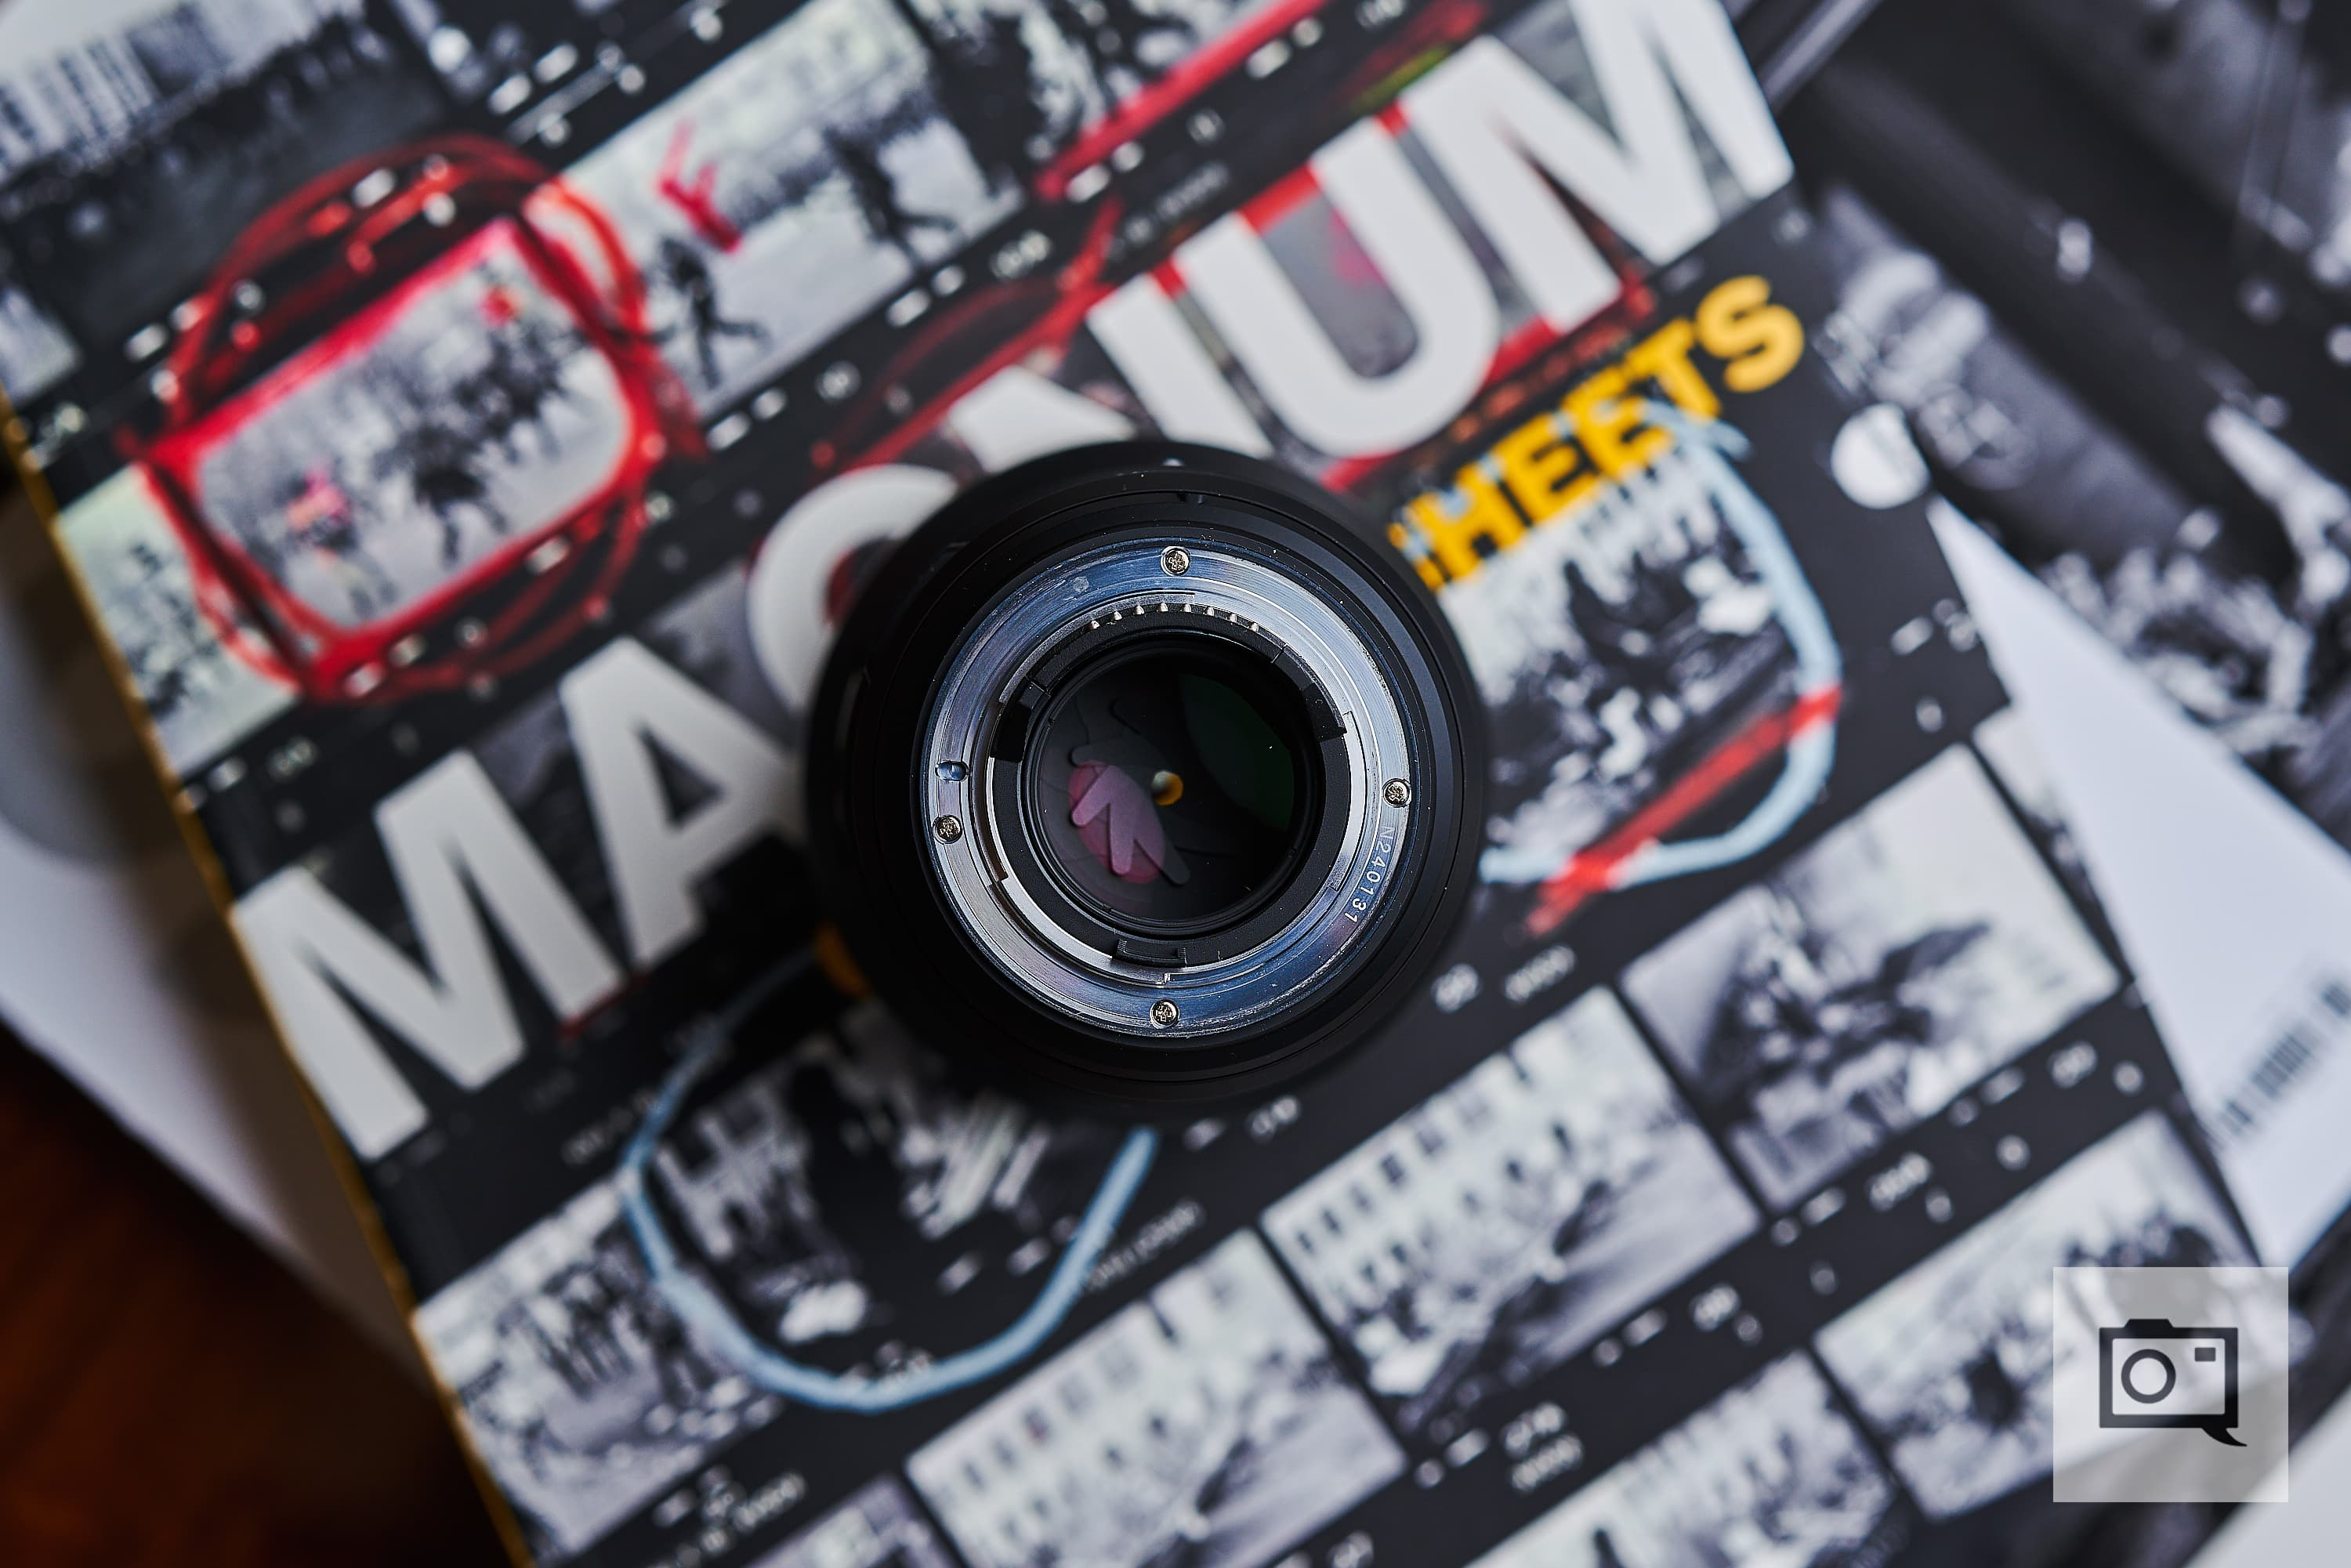 Magazine Editors Share What Publications Want from Photographers